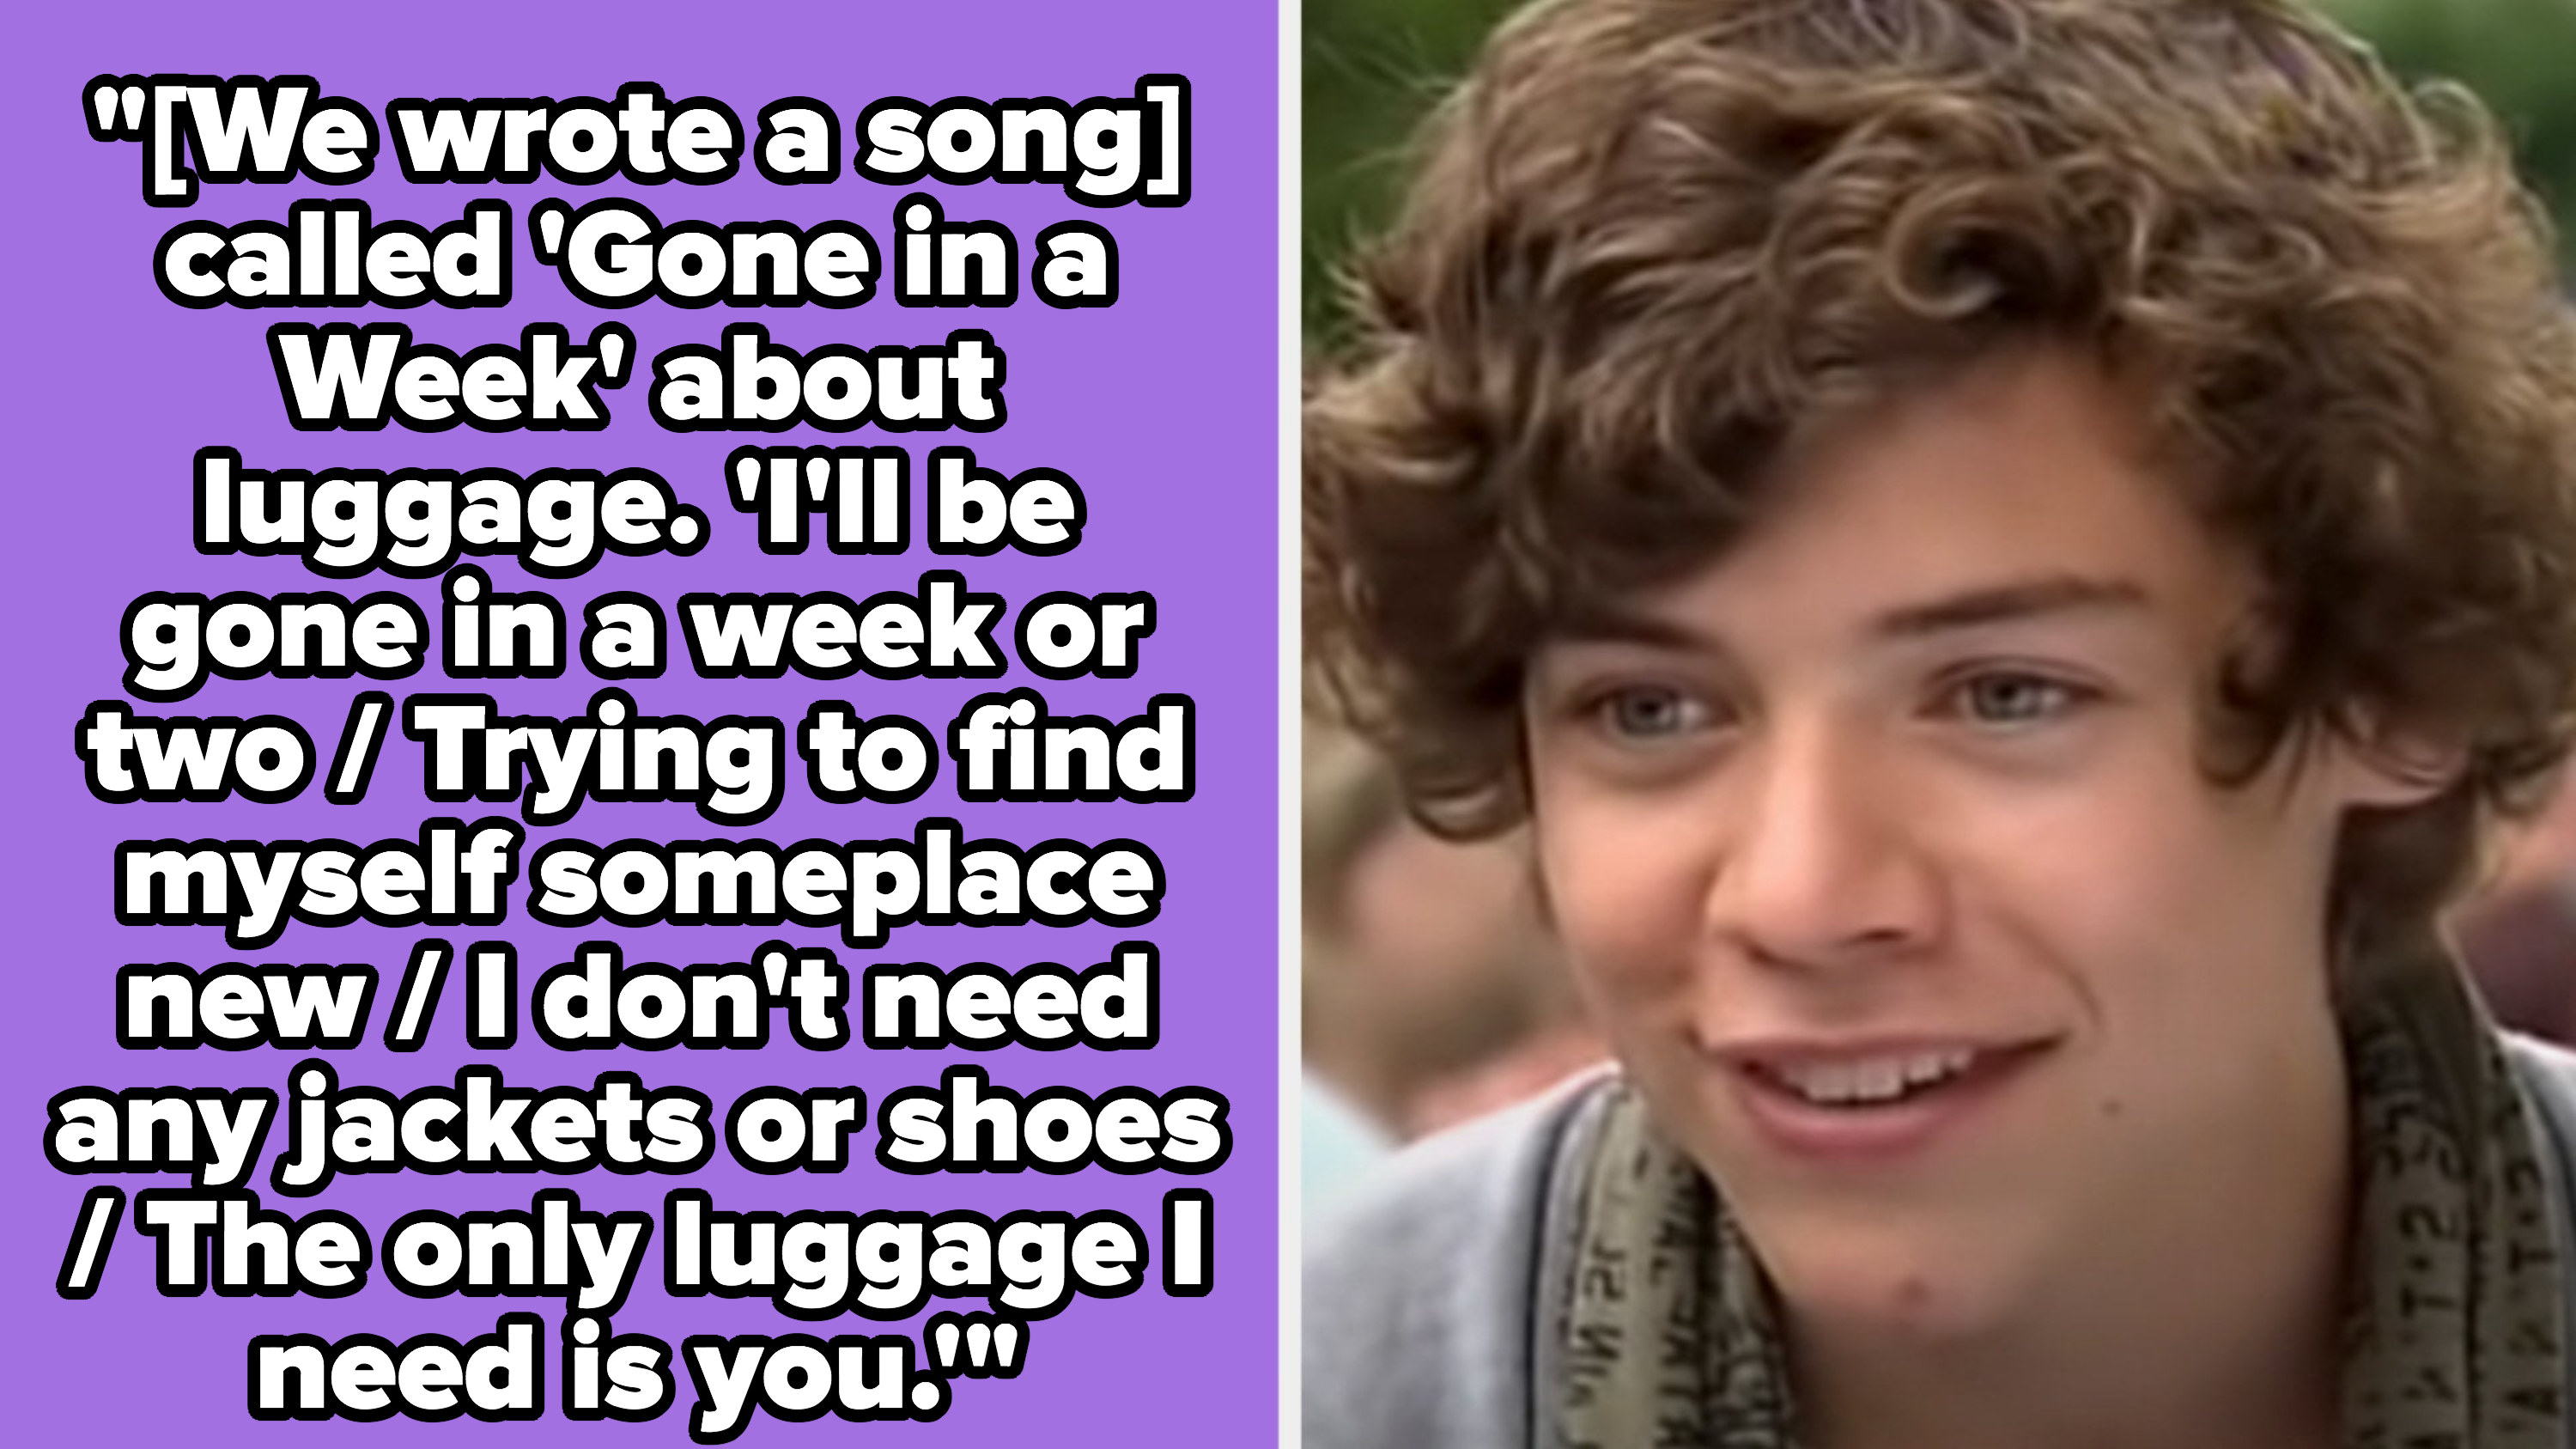 """A block of text from a Rolling Stone interview about writing a song called """"Gone in a Week;"""" Harry competing on """"The X-Factor"""""""